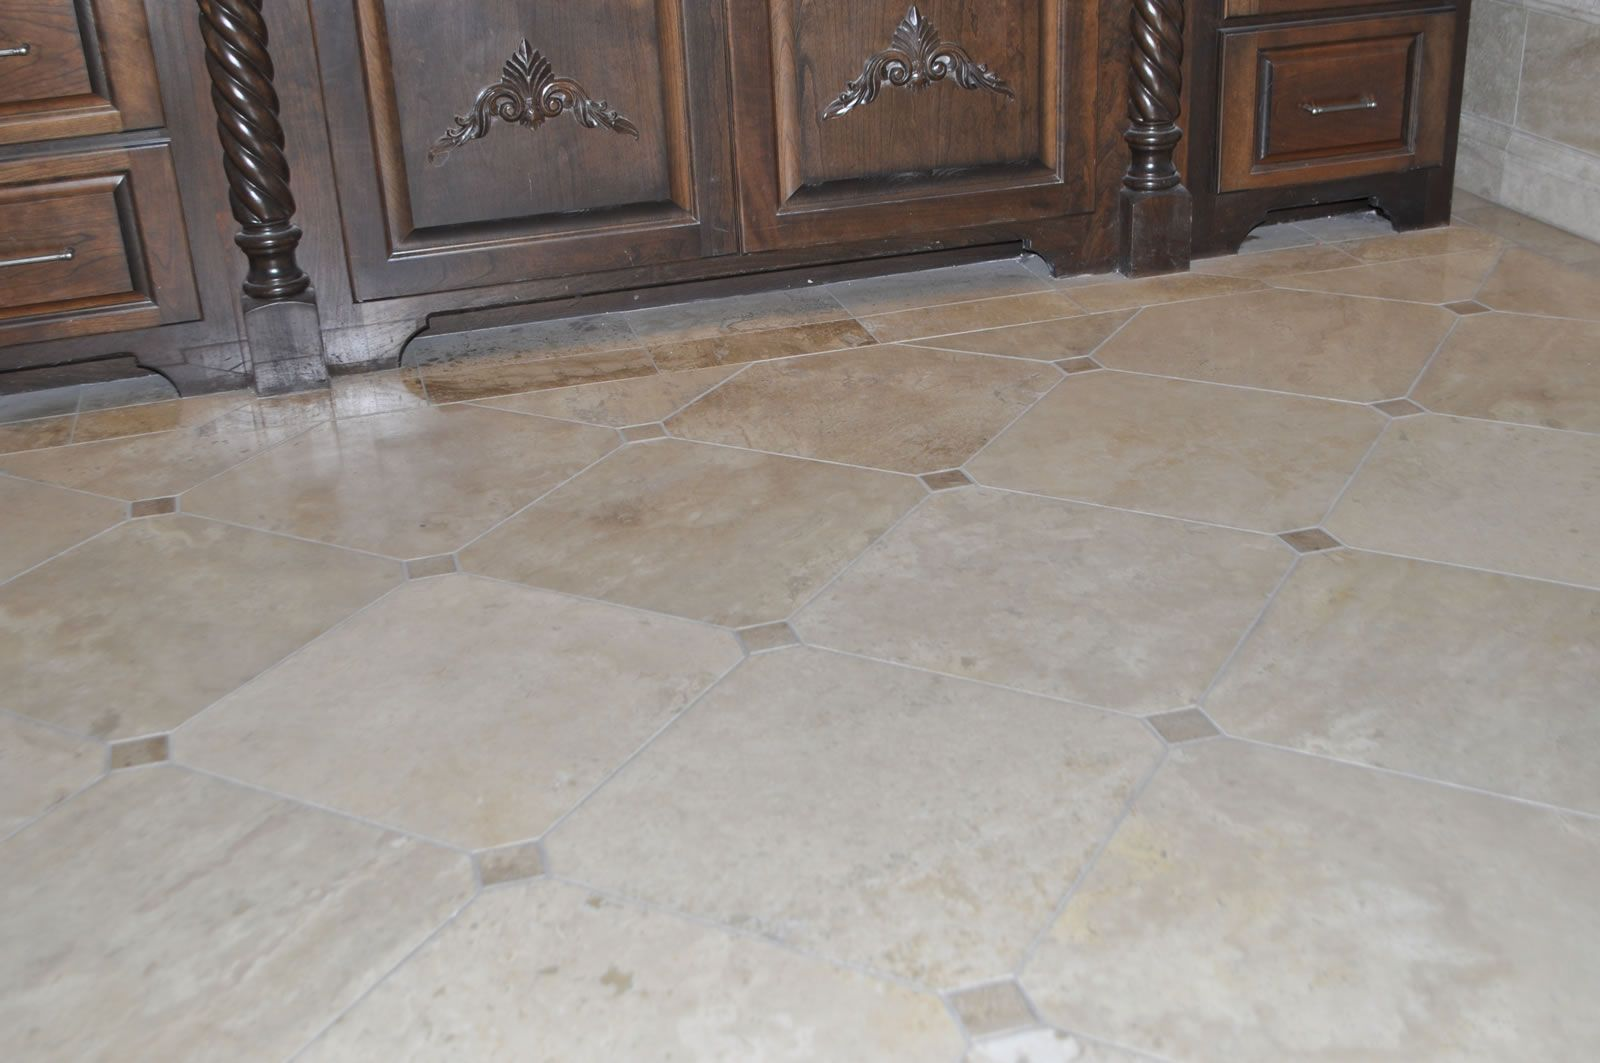 Porcelain Floor Kitchen Porcelain Tile In Living Room Ceramic Porcelain Stone Mosaic